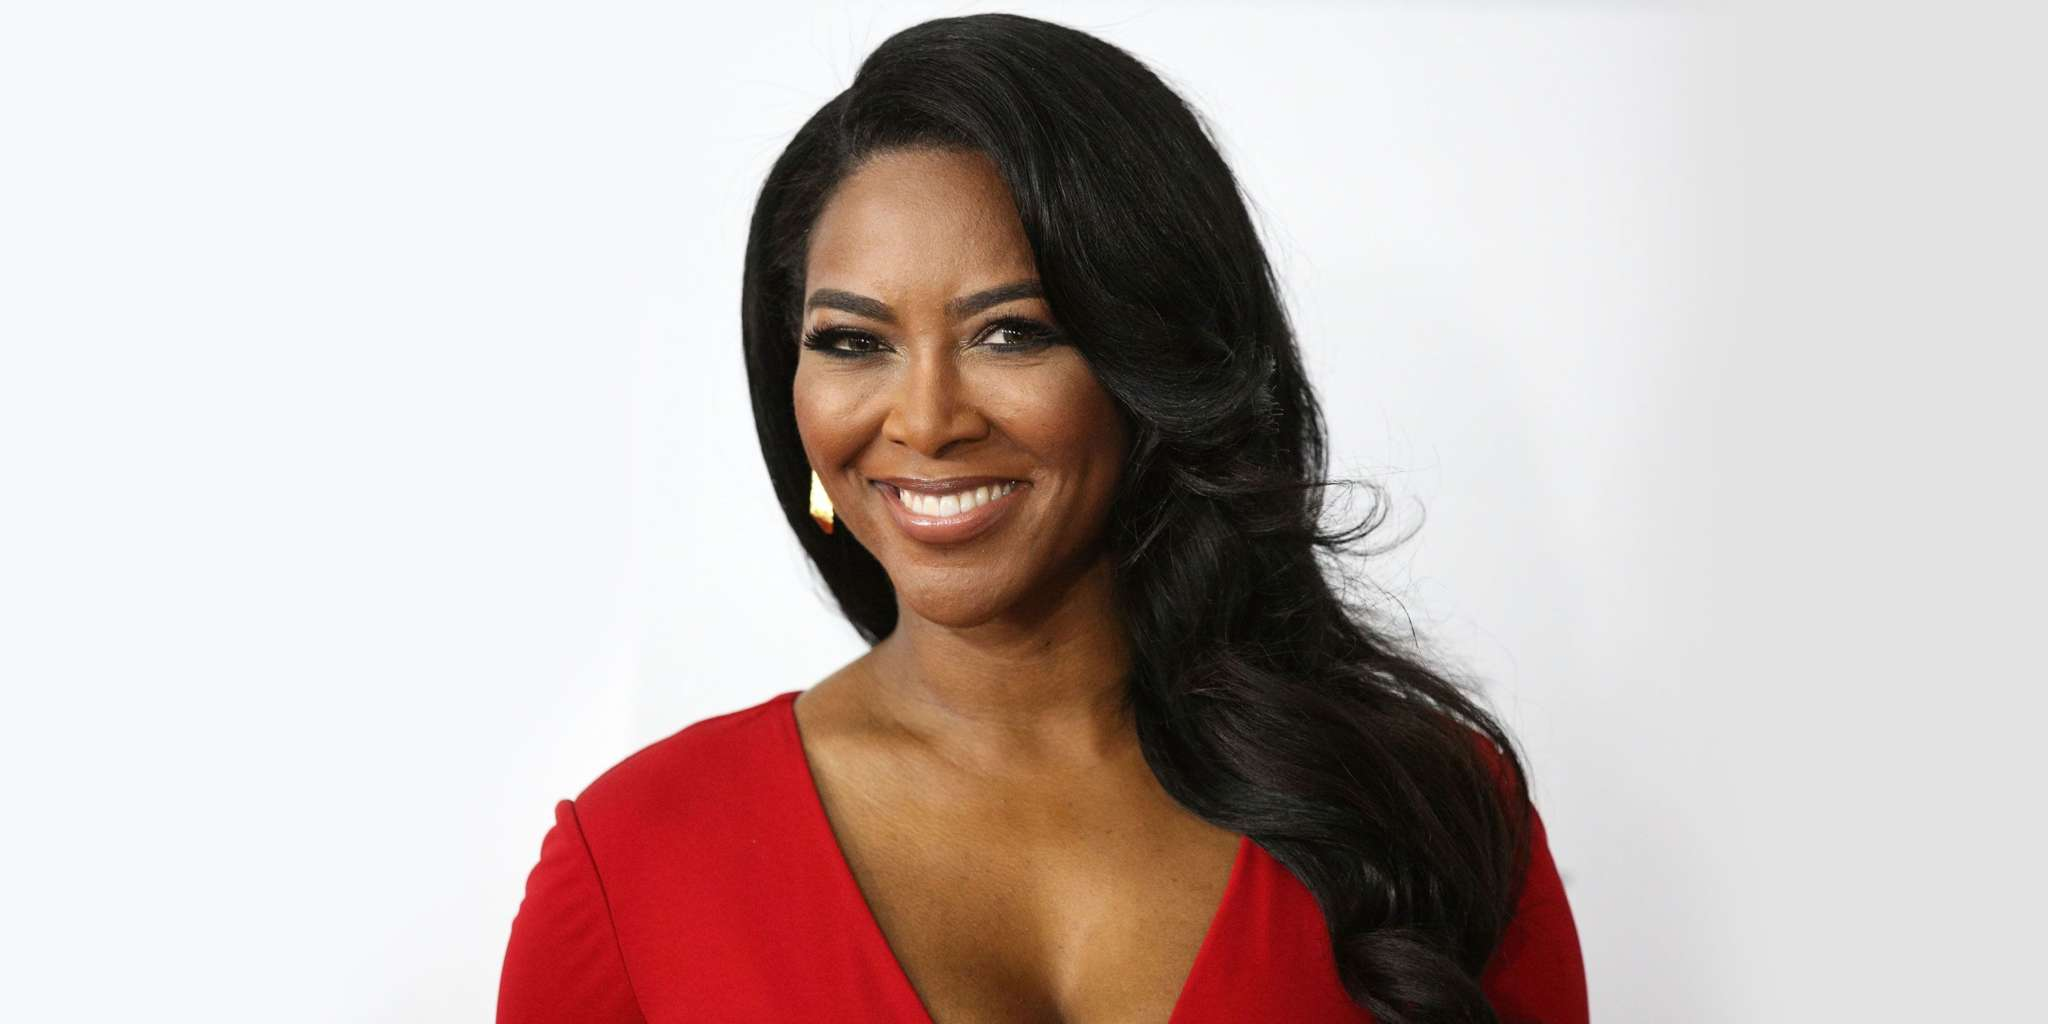 Kenya Moore Offers Her Gratitude To All The Supporters She Has - See Her Message Here